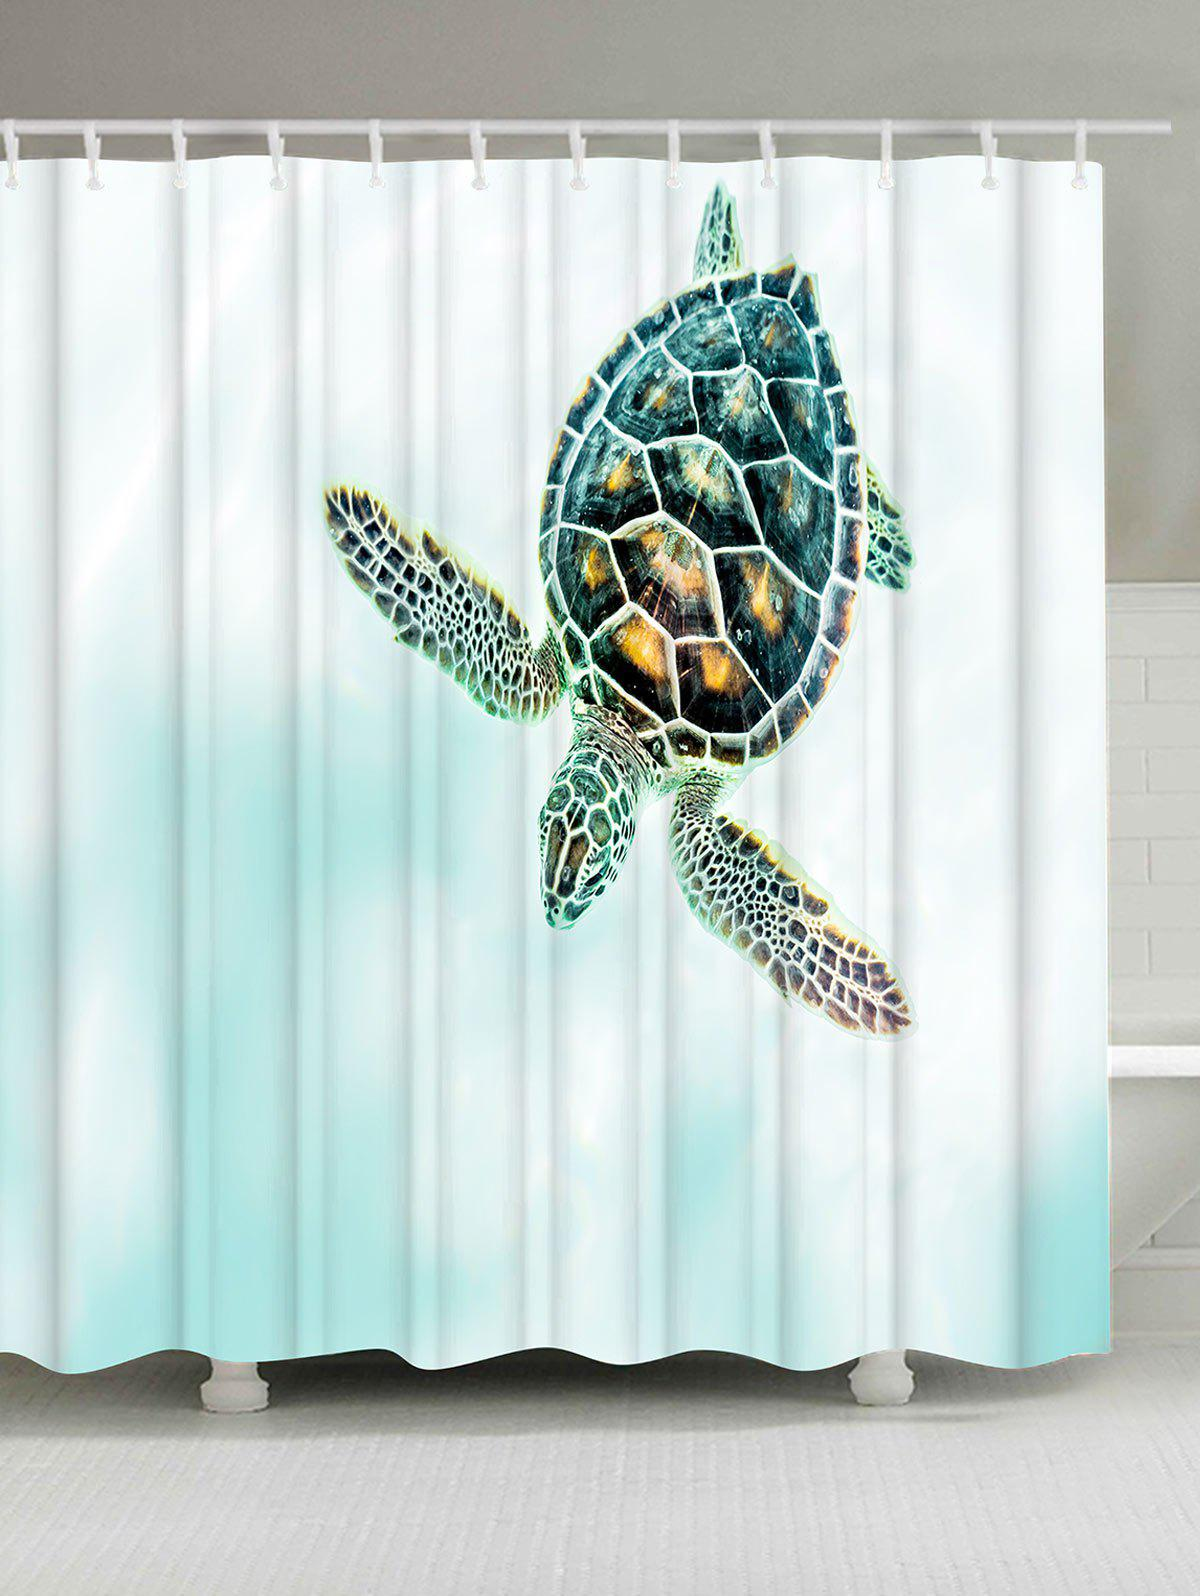 Thicker Tortoise Anti-bacteria Shower Curtain - COLORMIX W71 INCH * L79 INCH